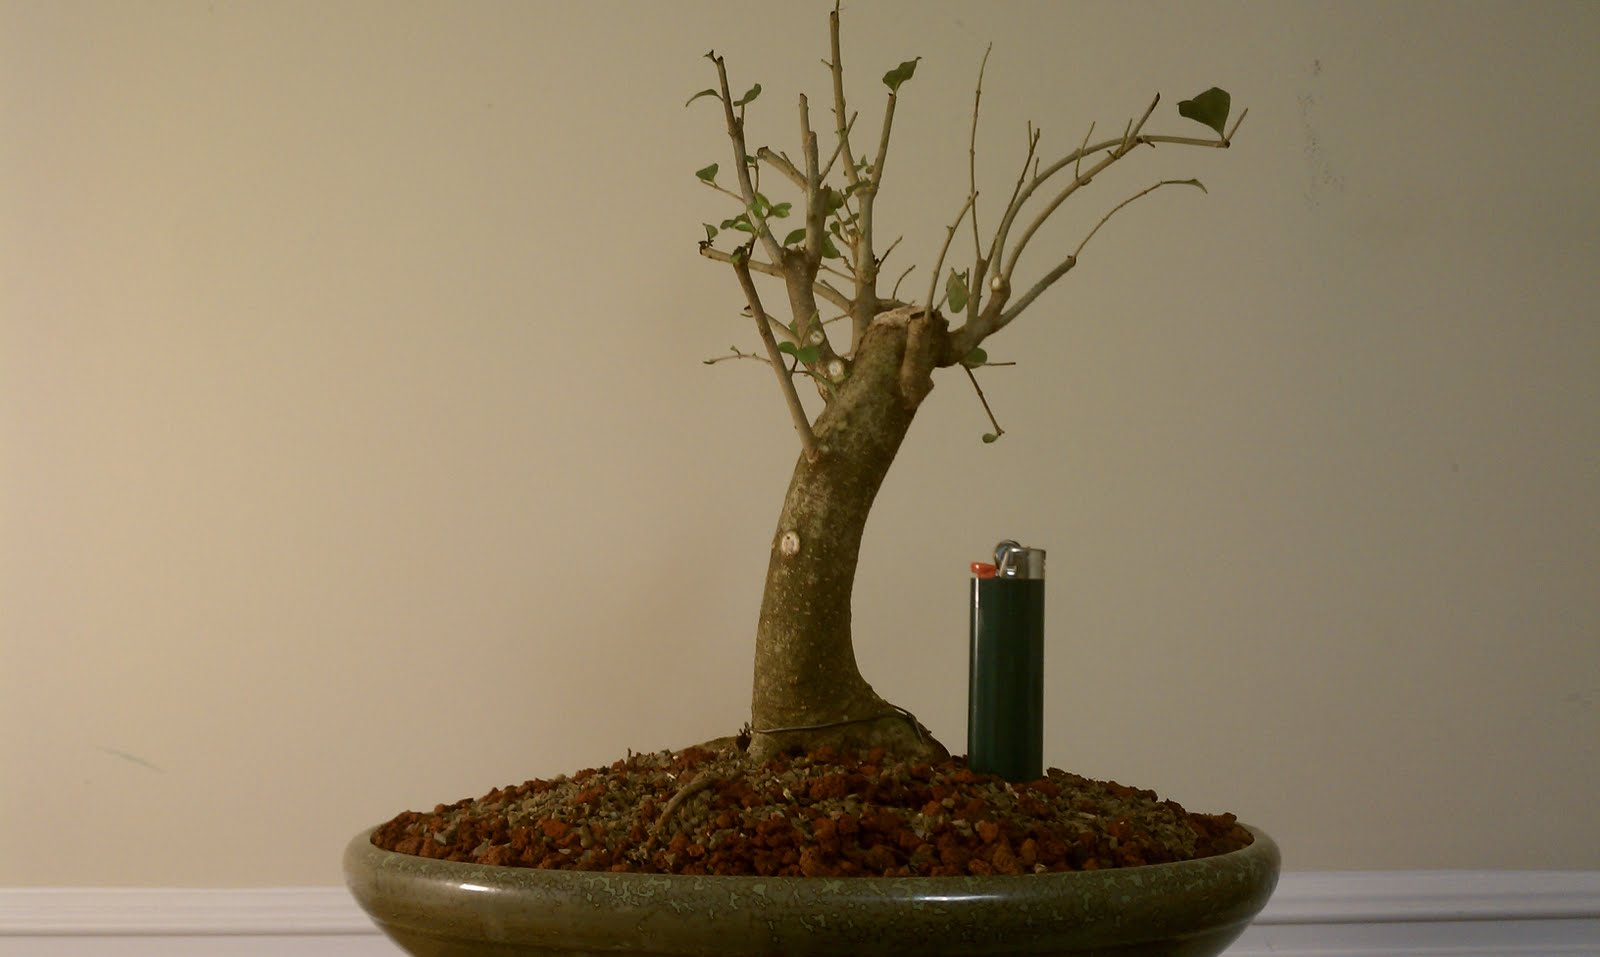 Bodhisattva Bonsai Privet Enters Into A New Future As Bonsai